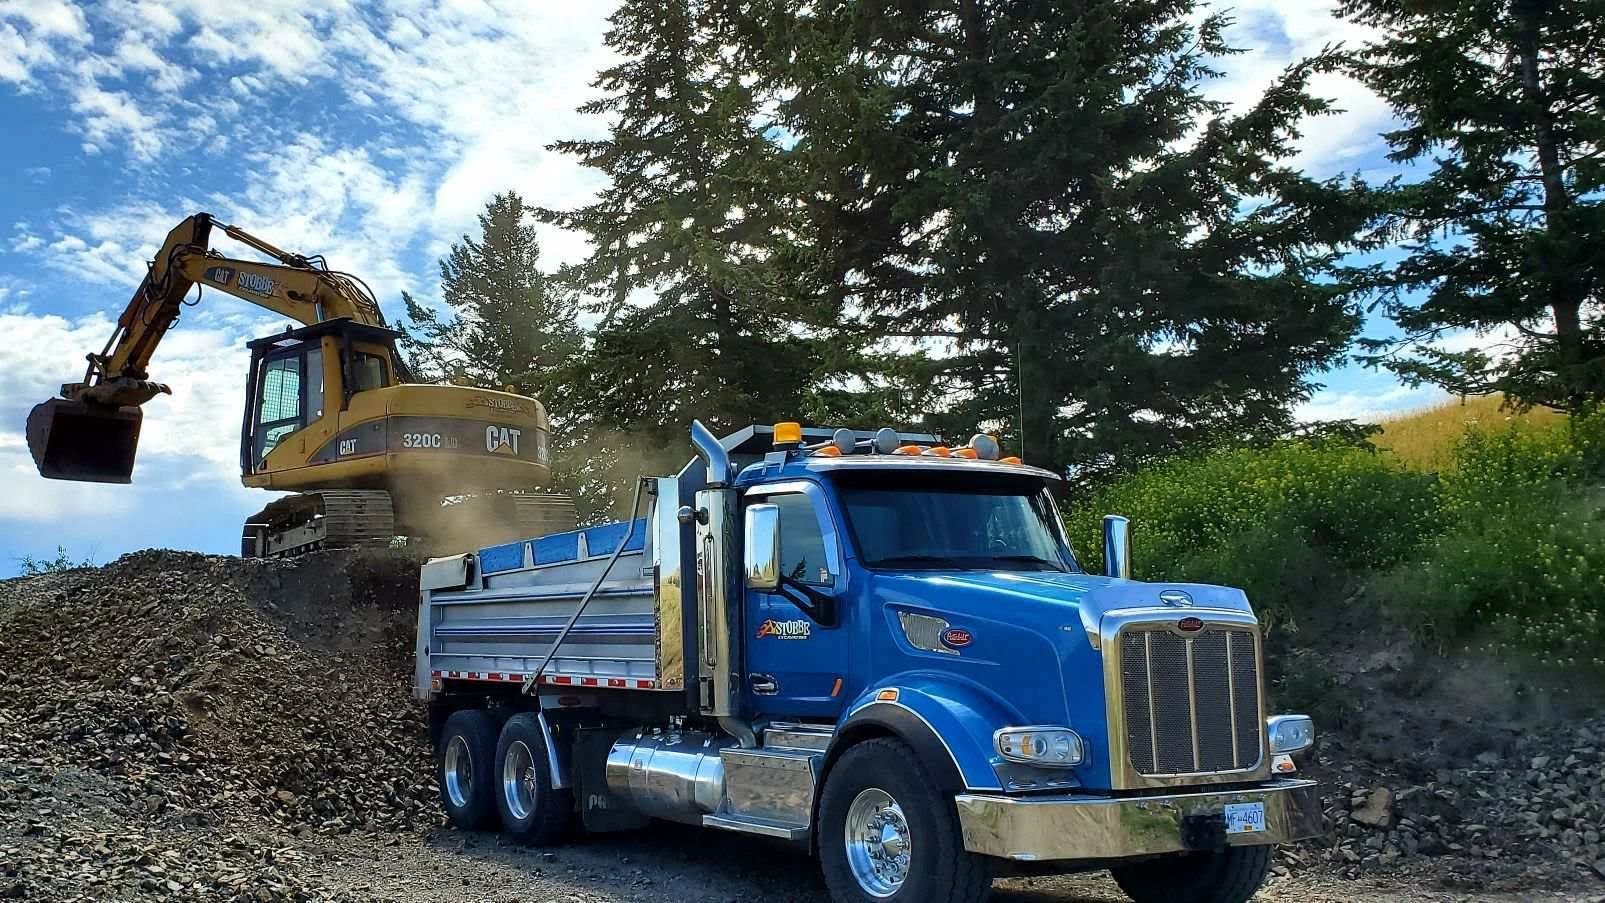 Stobbe Excavating Cat excavator loading Peterbilt dump truck with rock